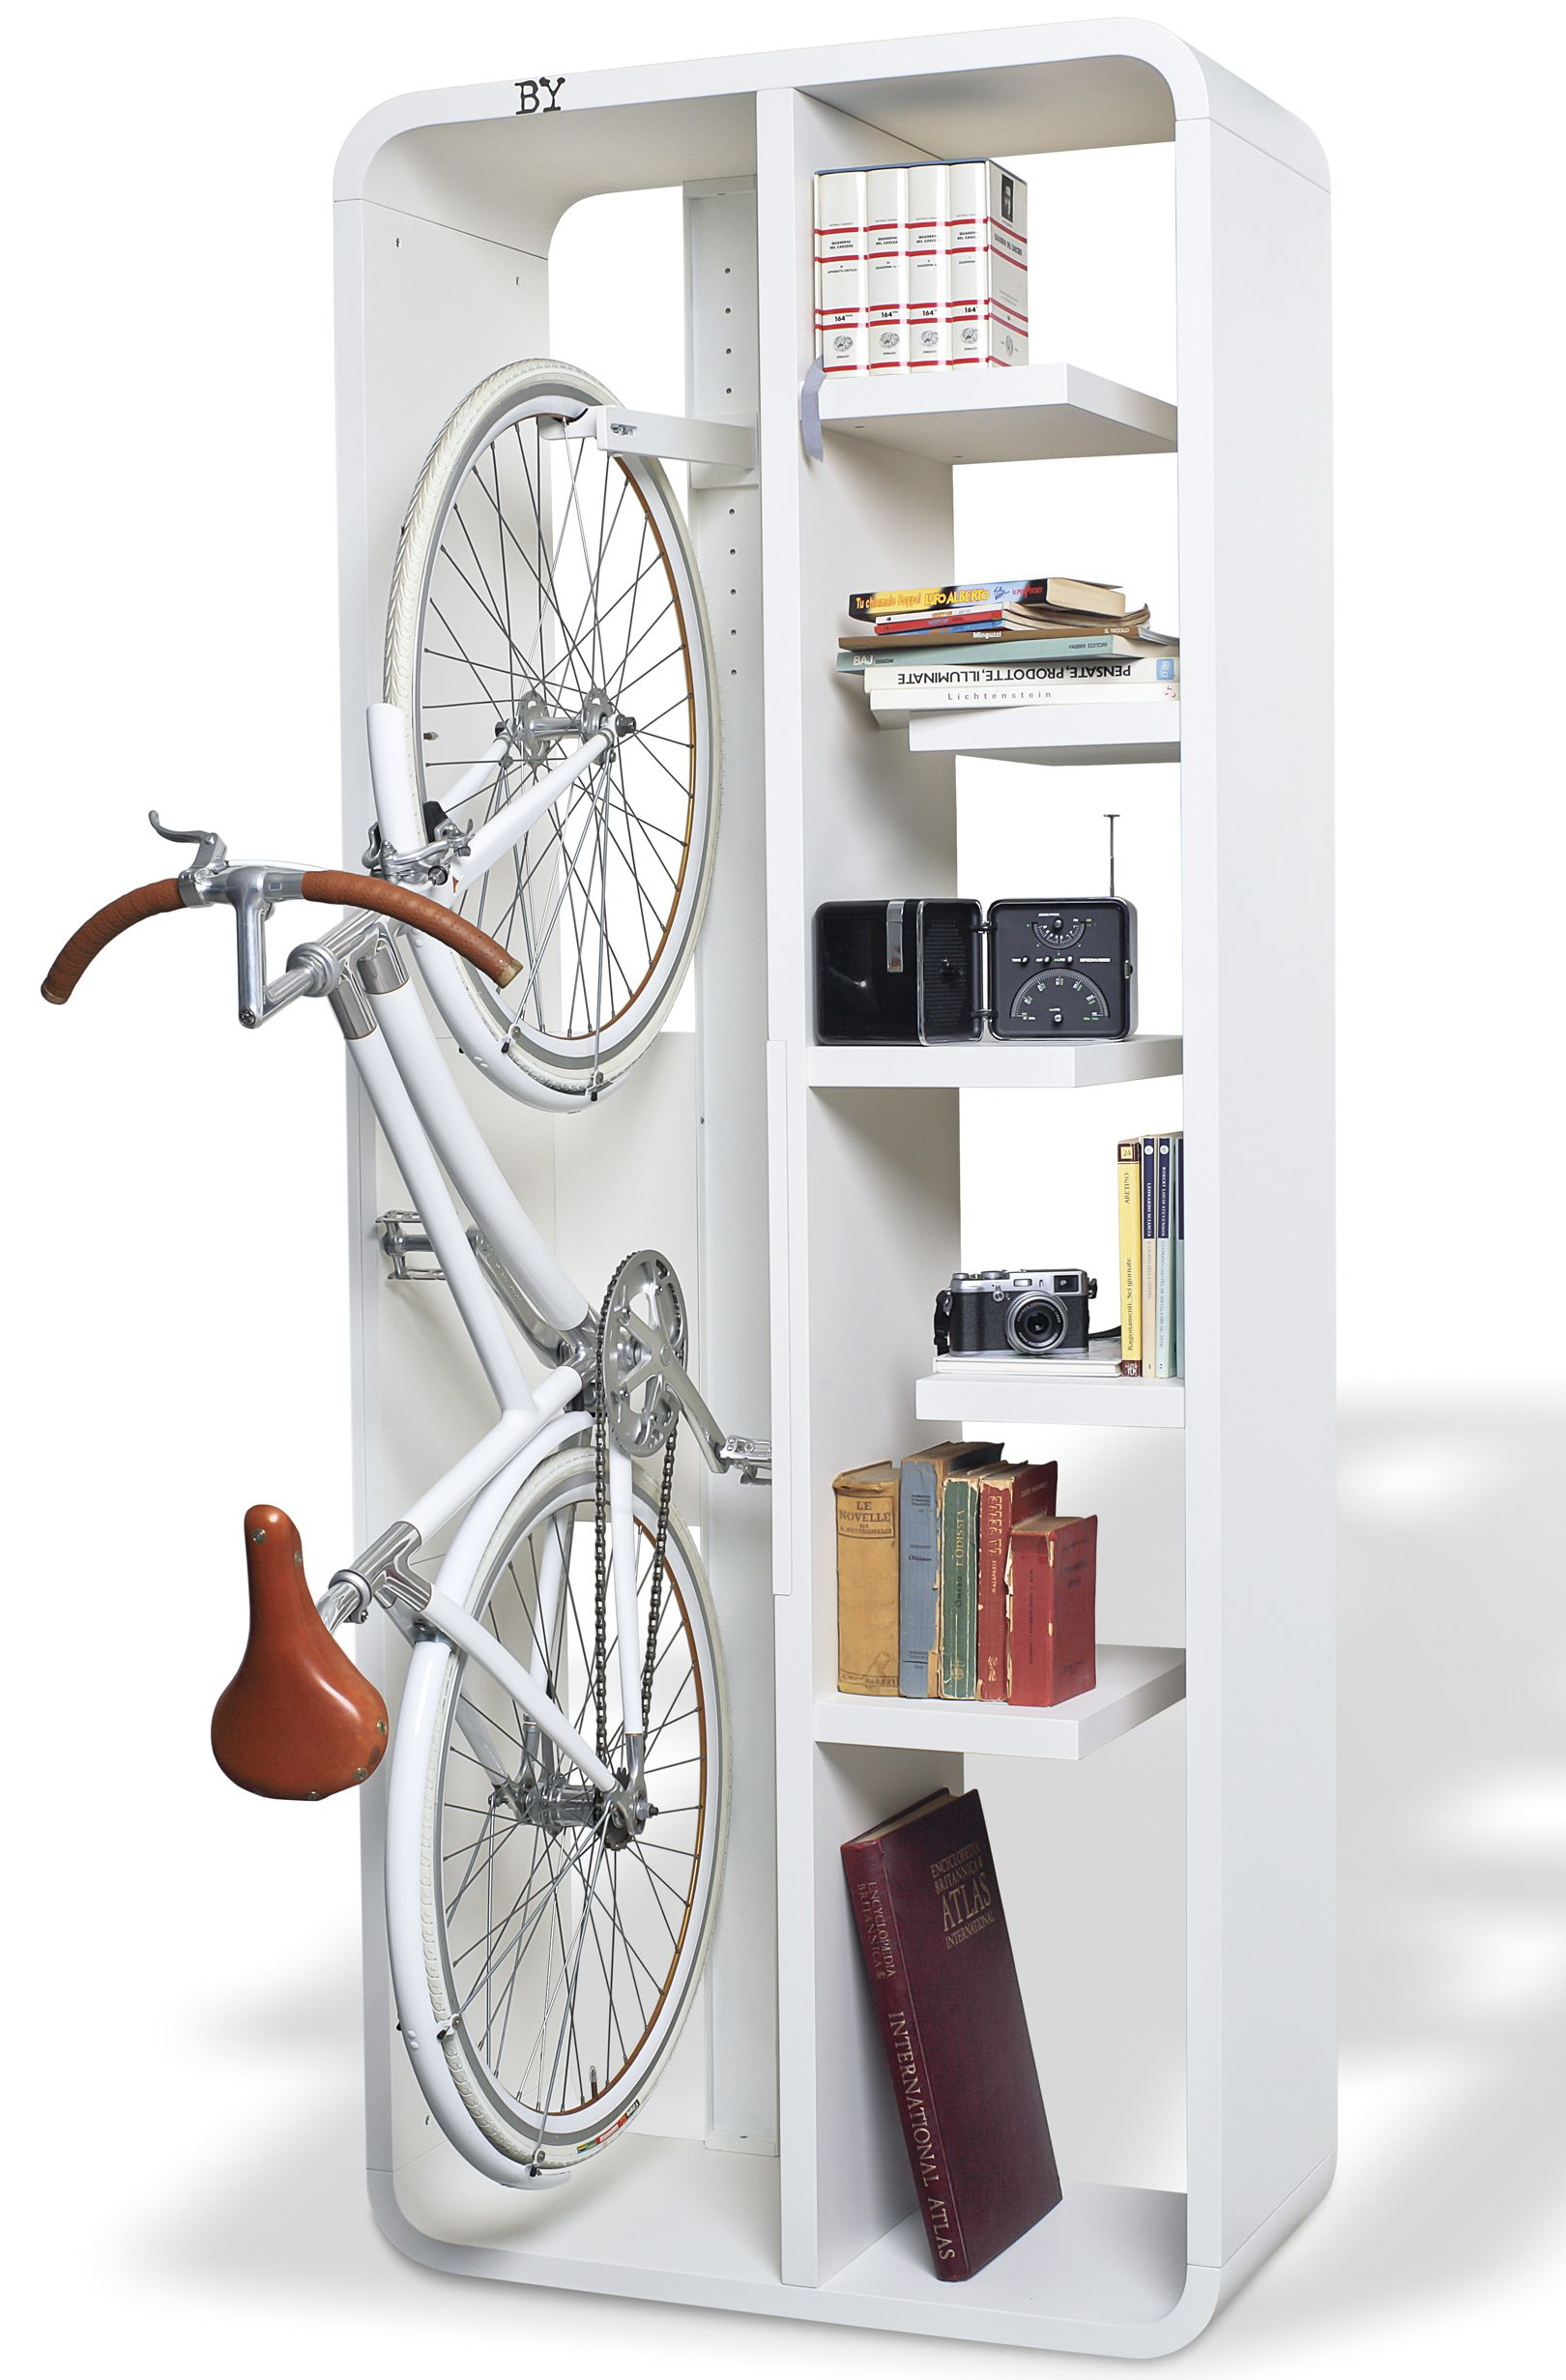 cool bike storage ideas bicycle carriers hitch bike rack storage stands bike storage ideas ideas photo